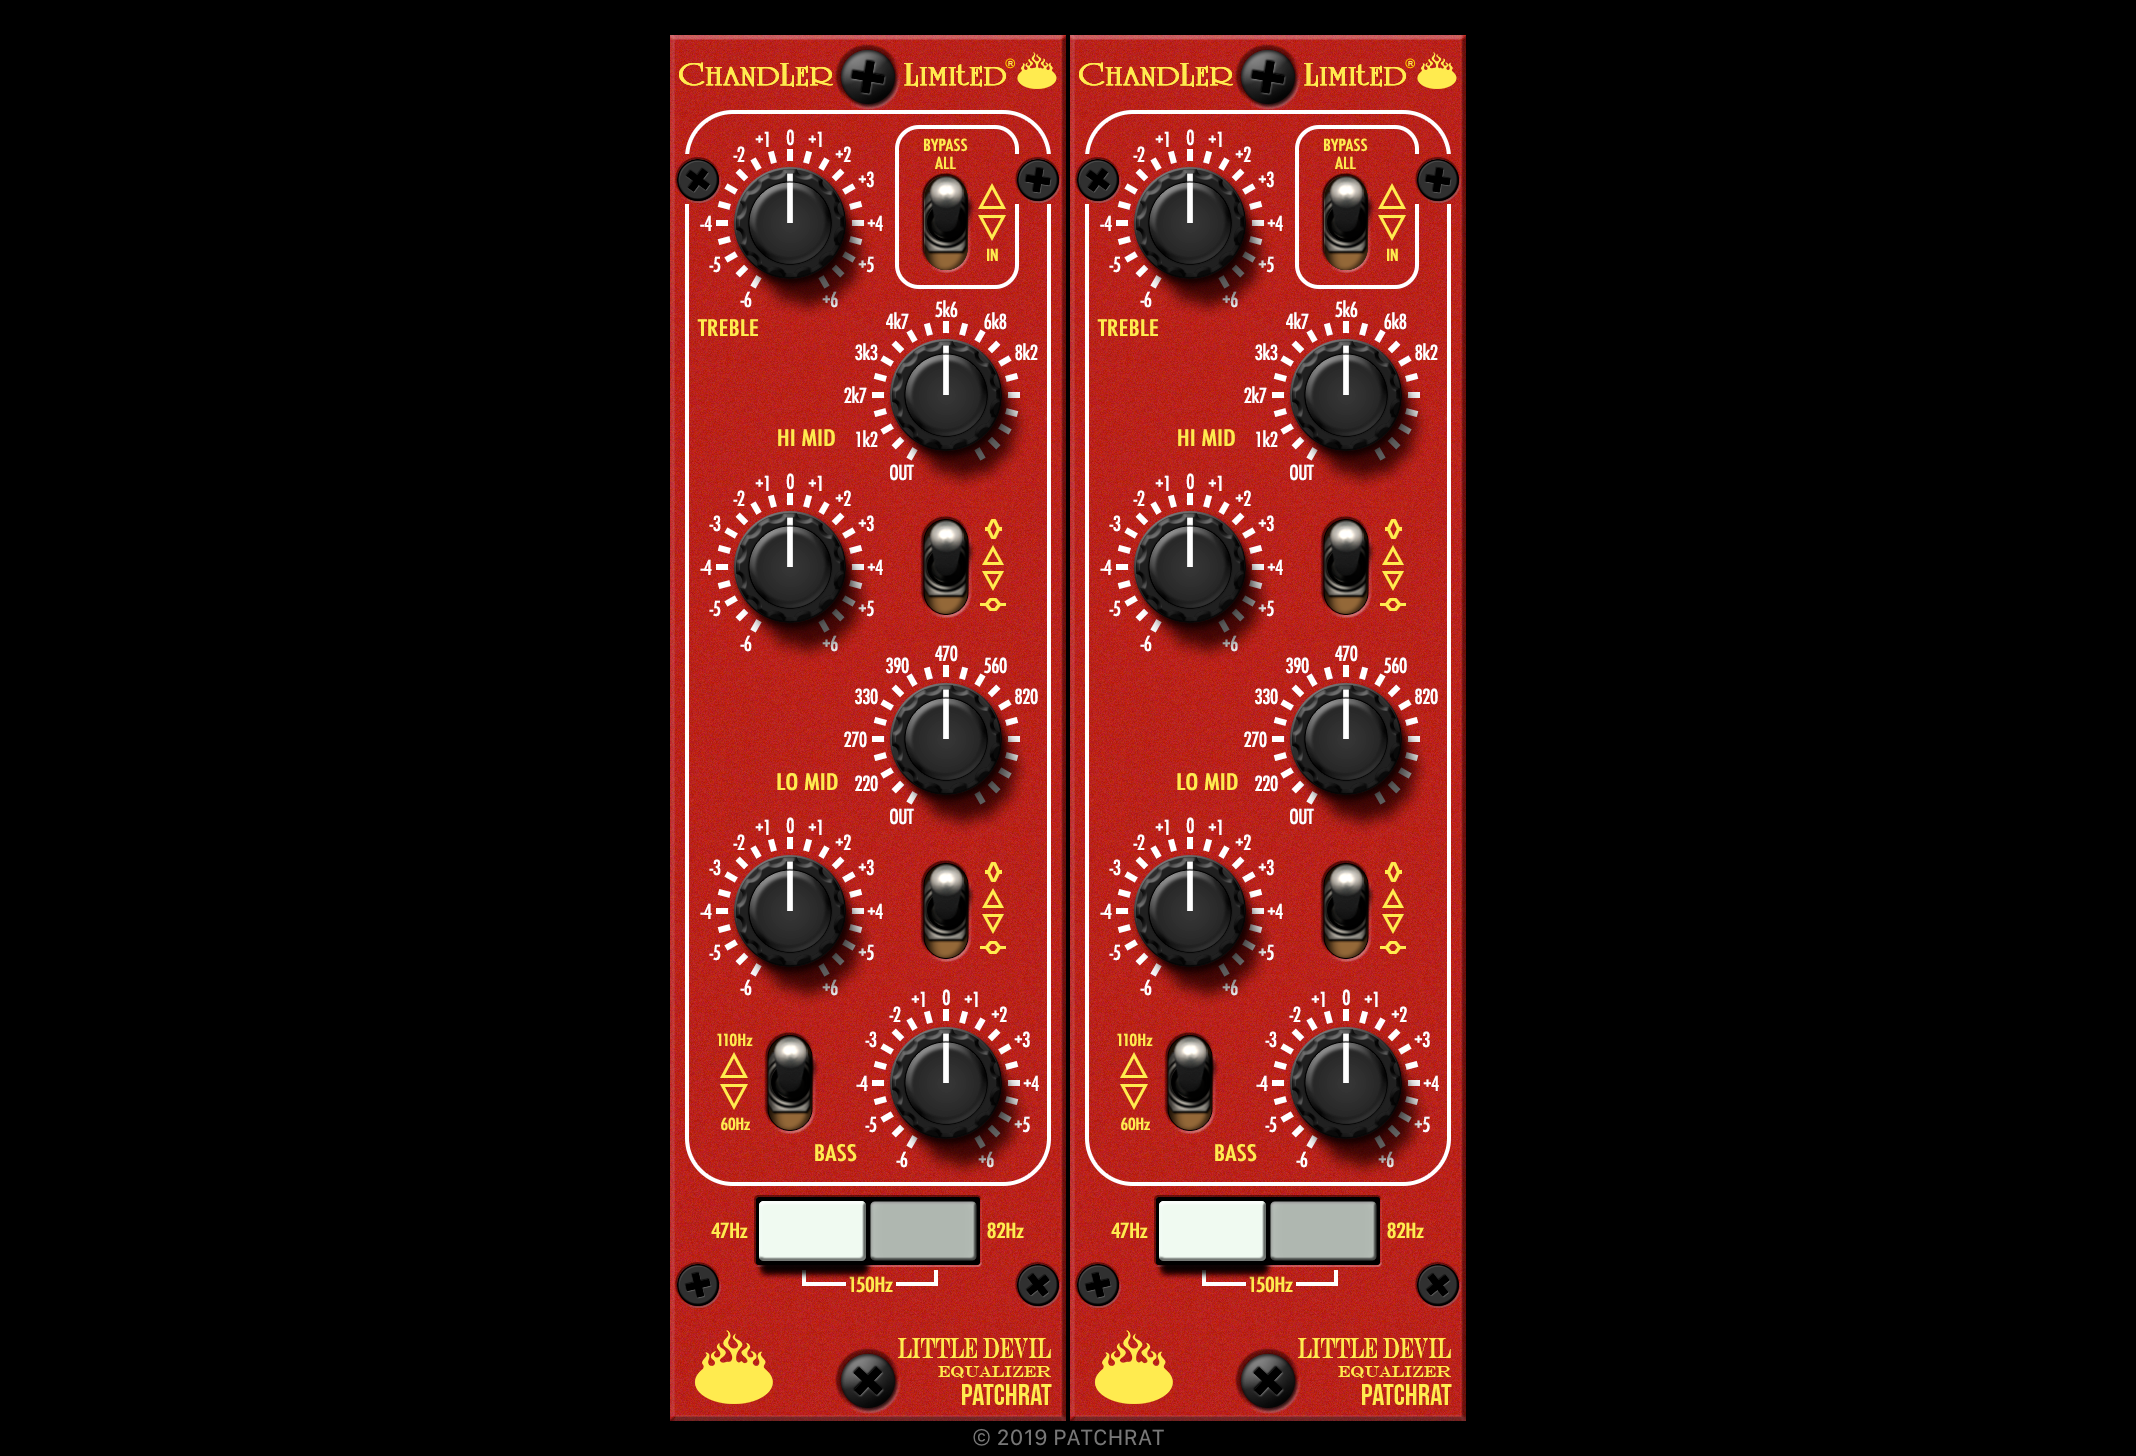 Chandler Limited Little Devil Equalizer recall module for the Patchrat app